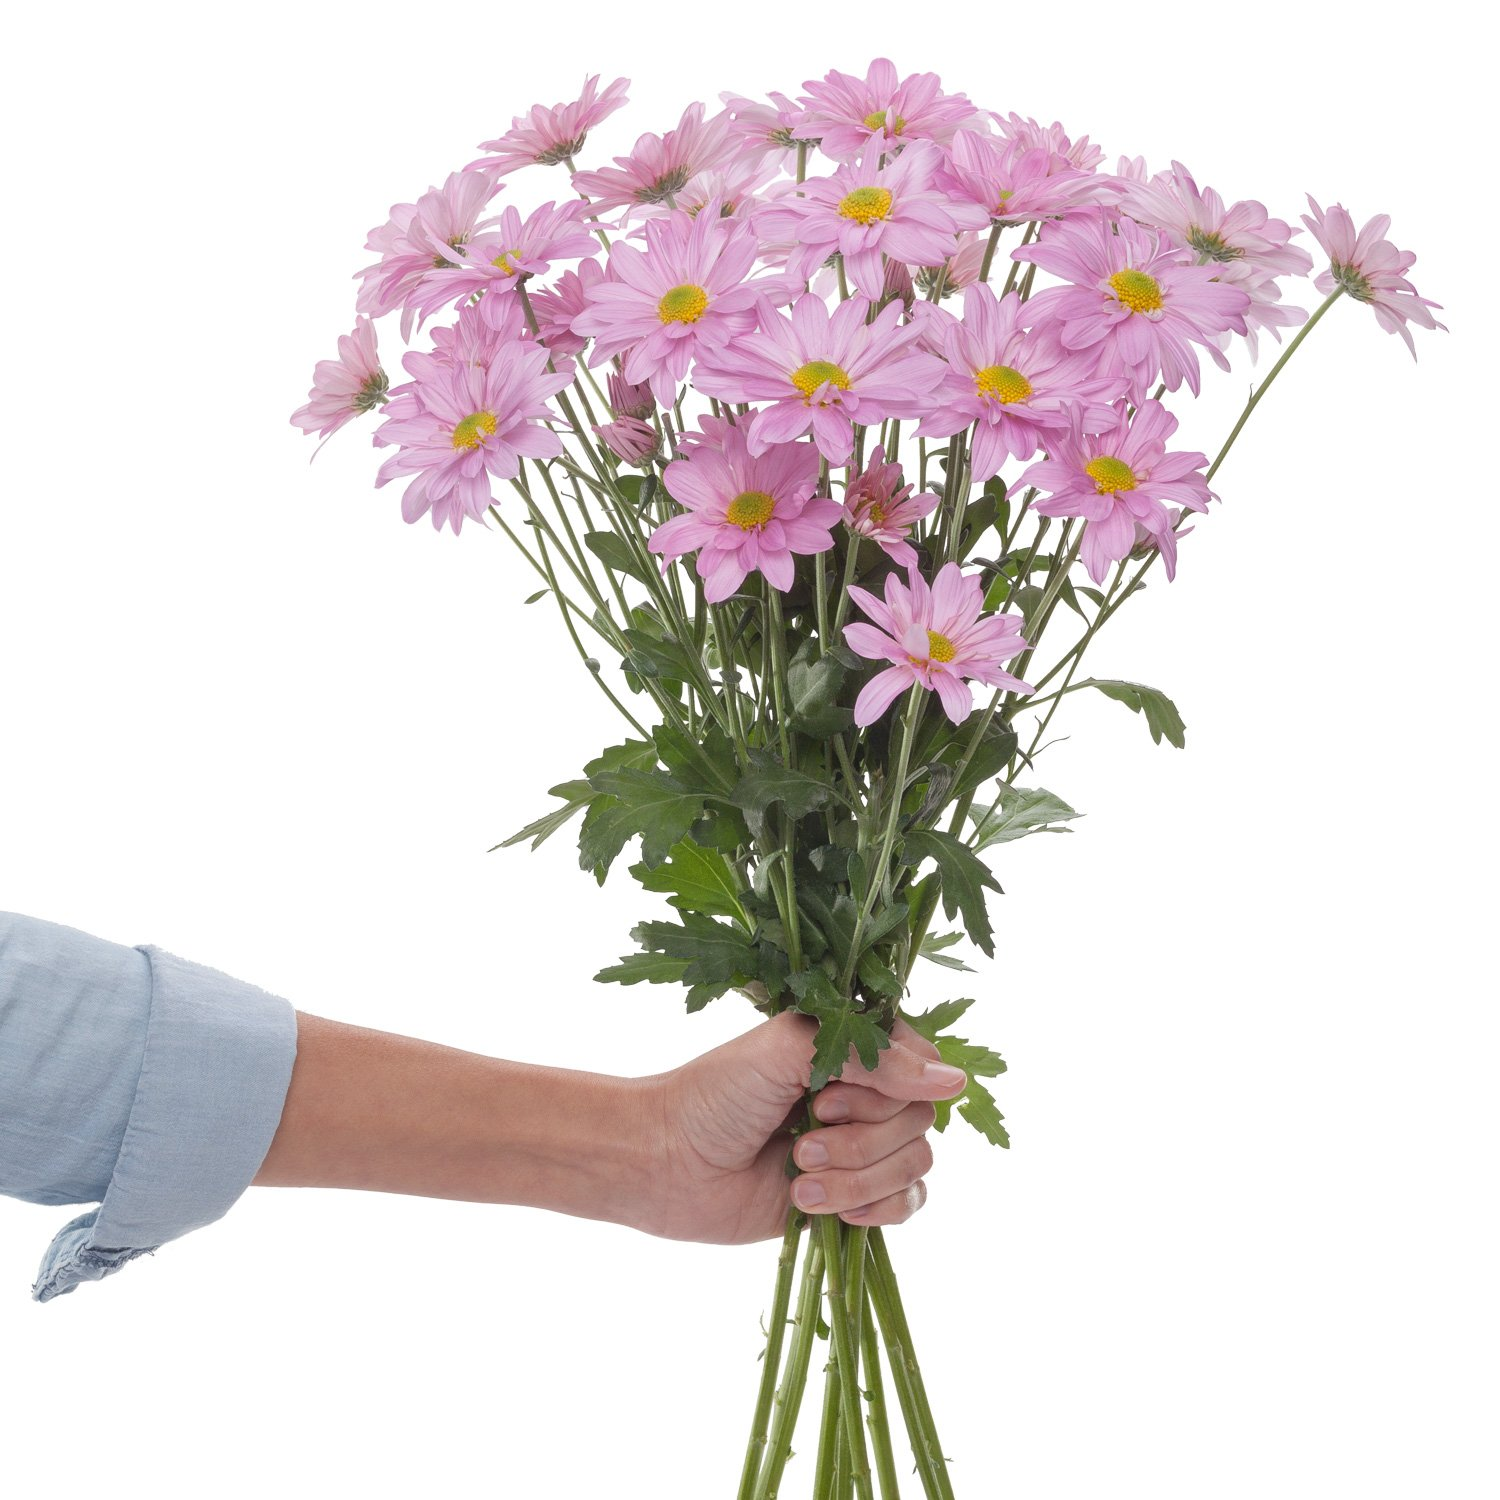 Chrysanthemums | Pink - 60 Stem Count by Flower Farm Shop